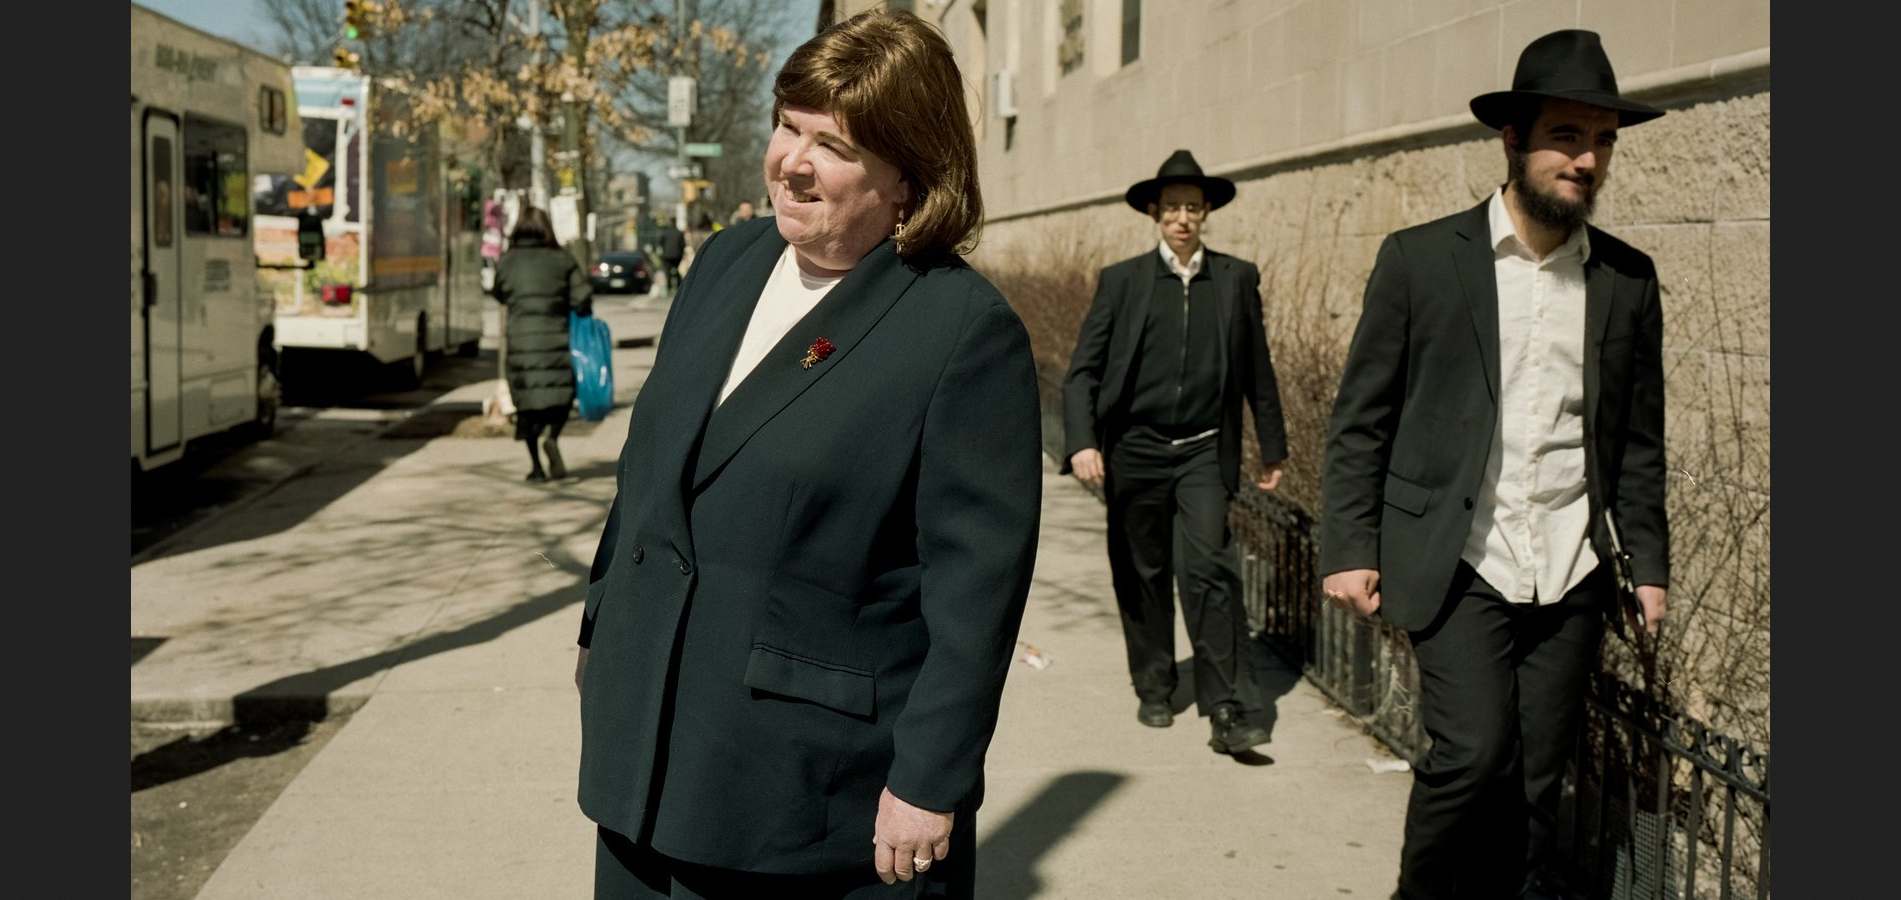 New York Times Features Lubavitch Matchmaker & Other Orthodox Jews in the News